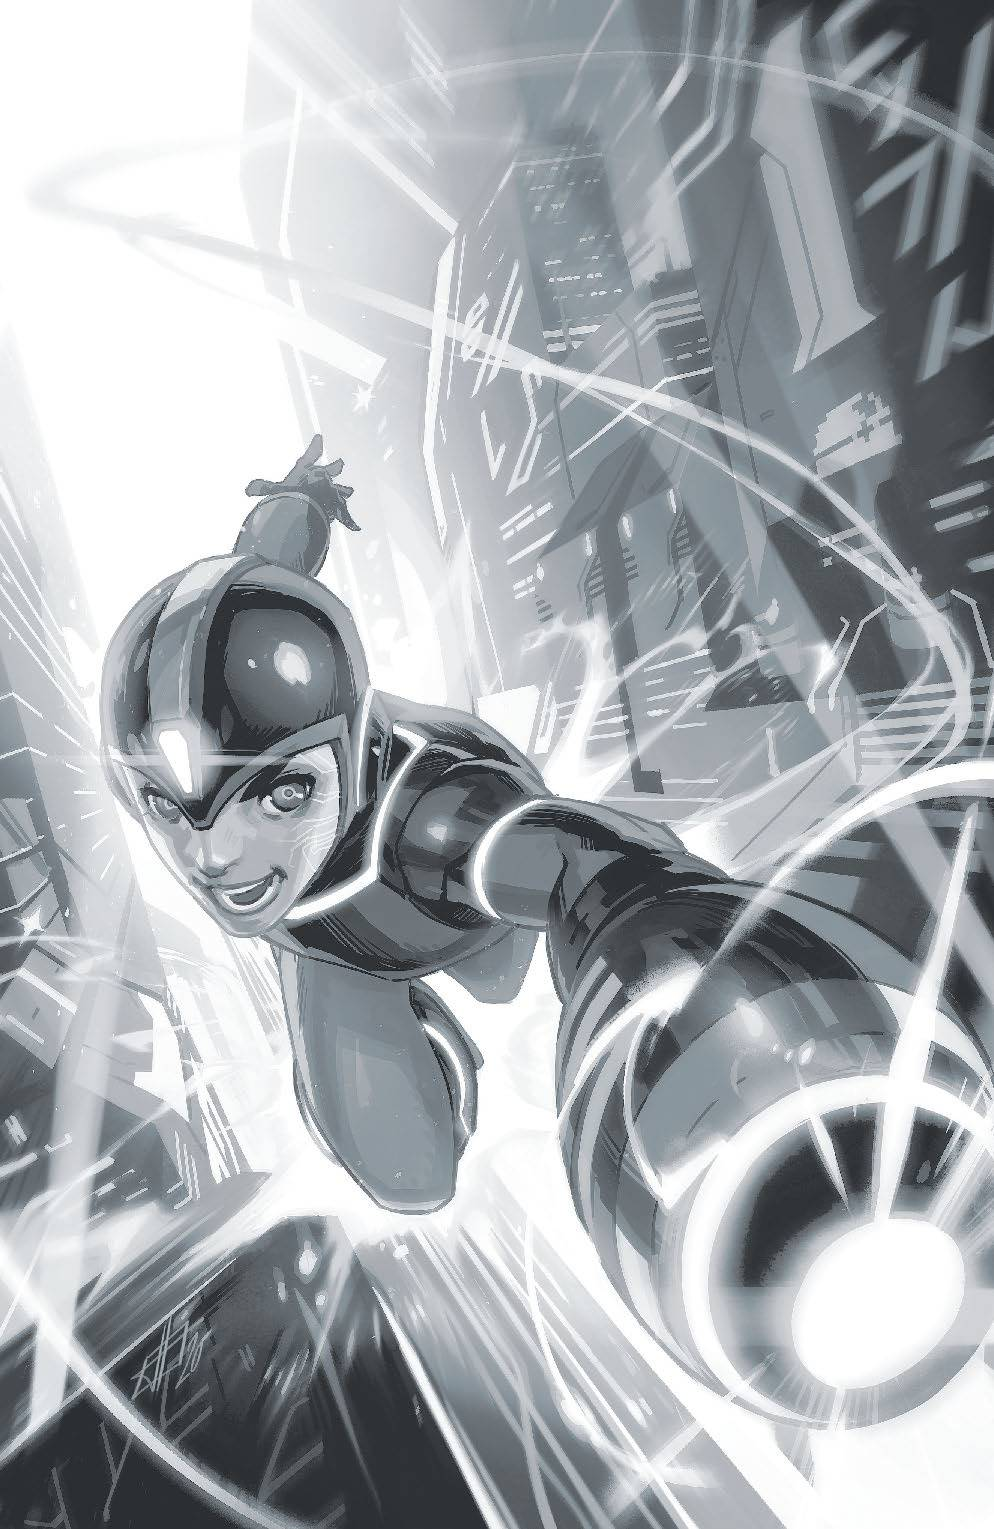 790099_mega-man-fully-charged-1-50-copy-cover-silver-foil ComicList: BOOM! Studios New Releases for 08/26/2020